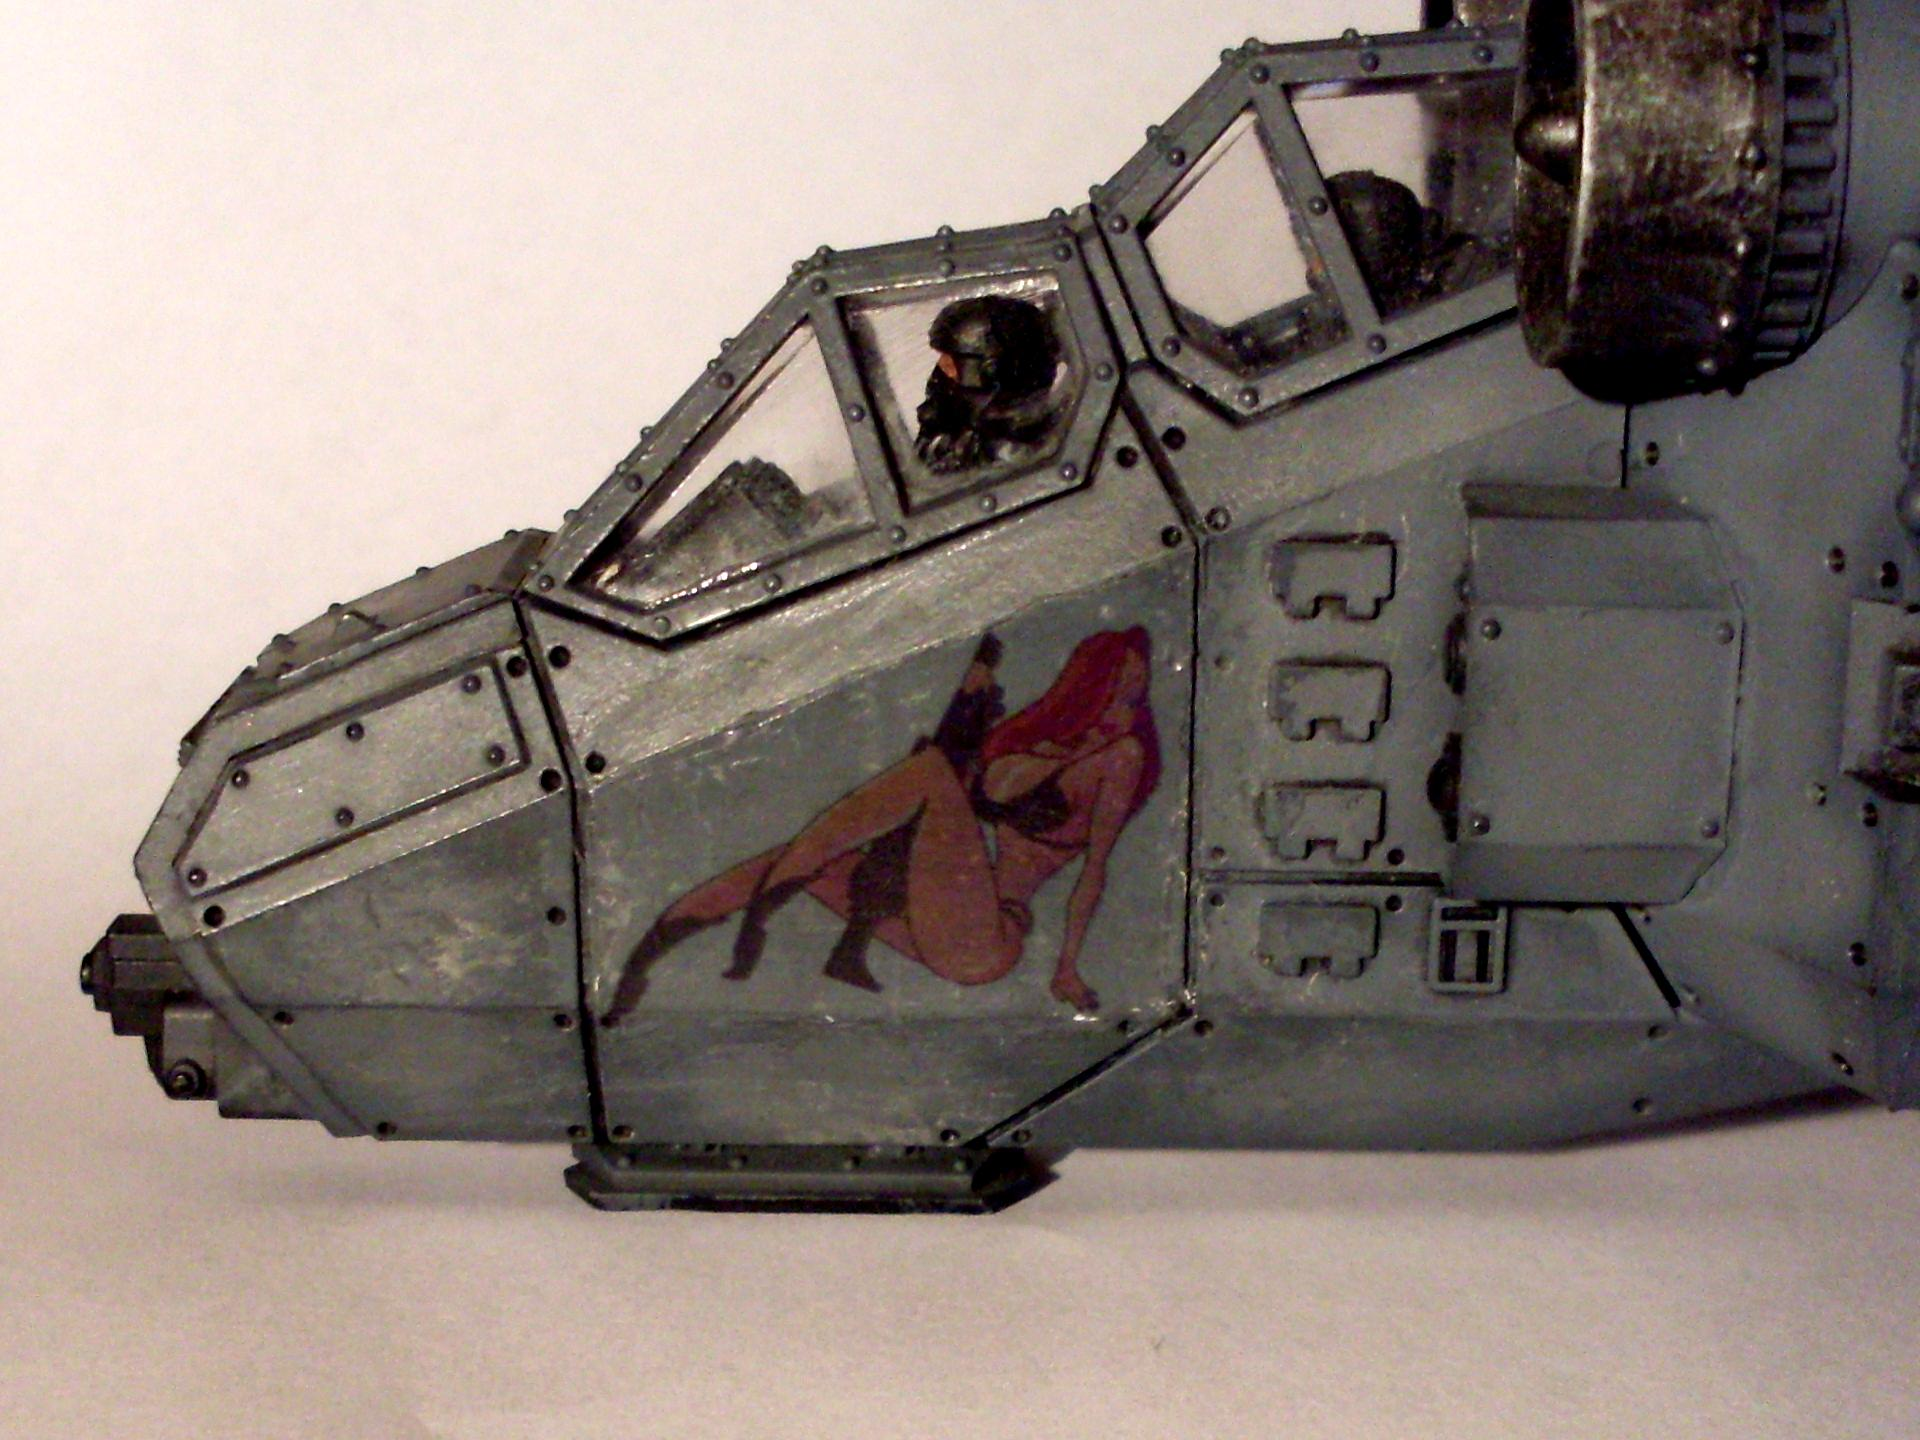 Imperial, Nose Art, Valkyrie